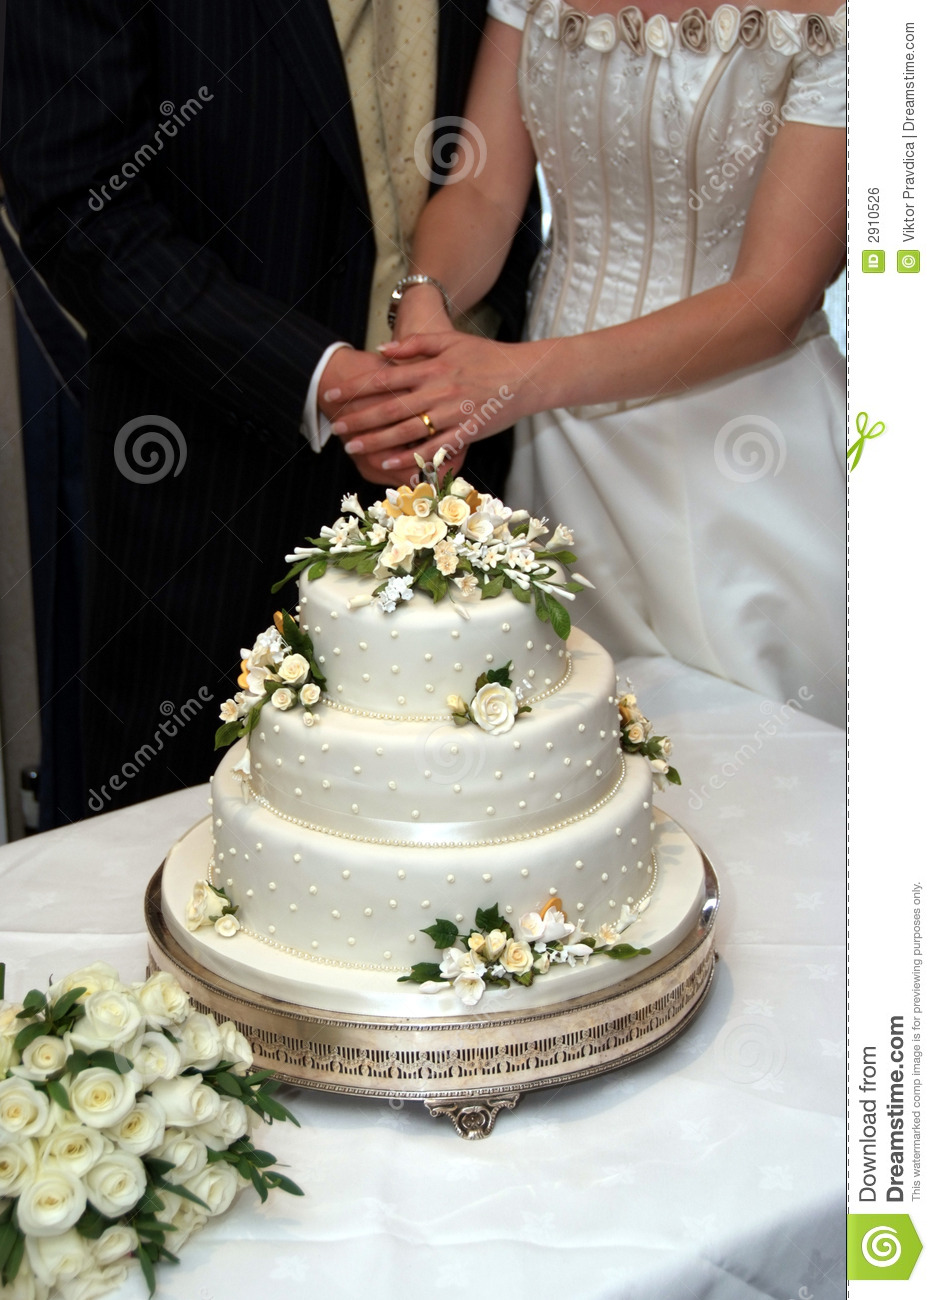 15 Wedding Cake Cutting Icon Images